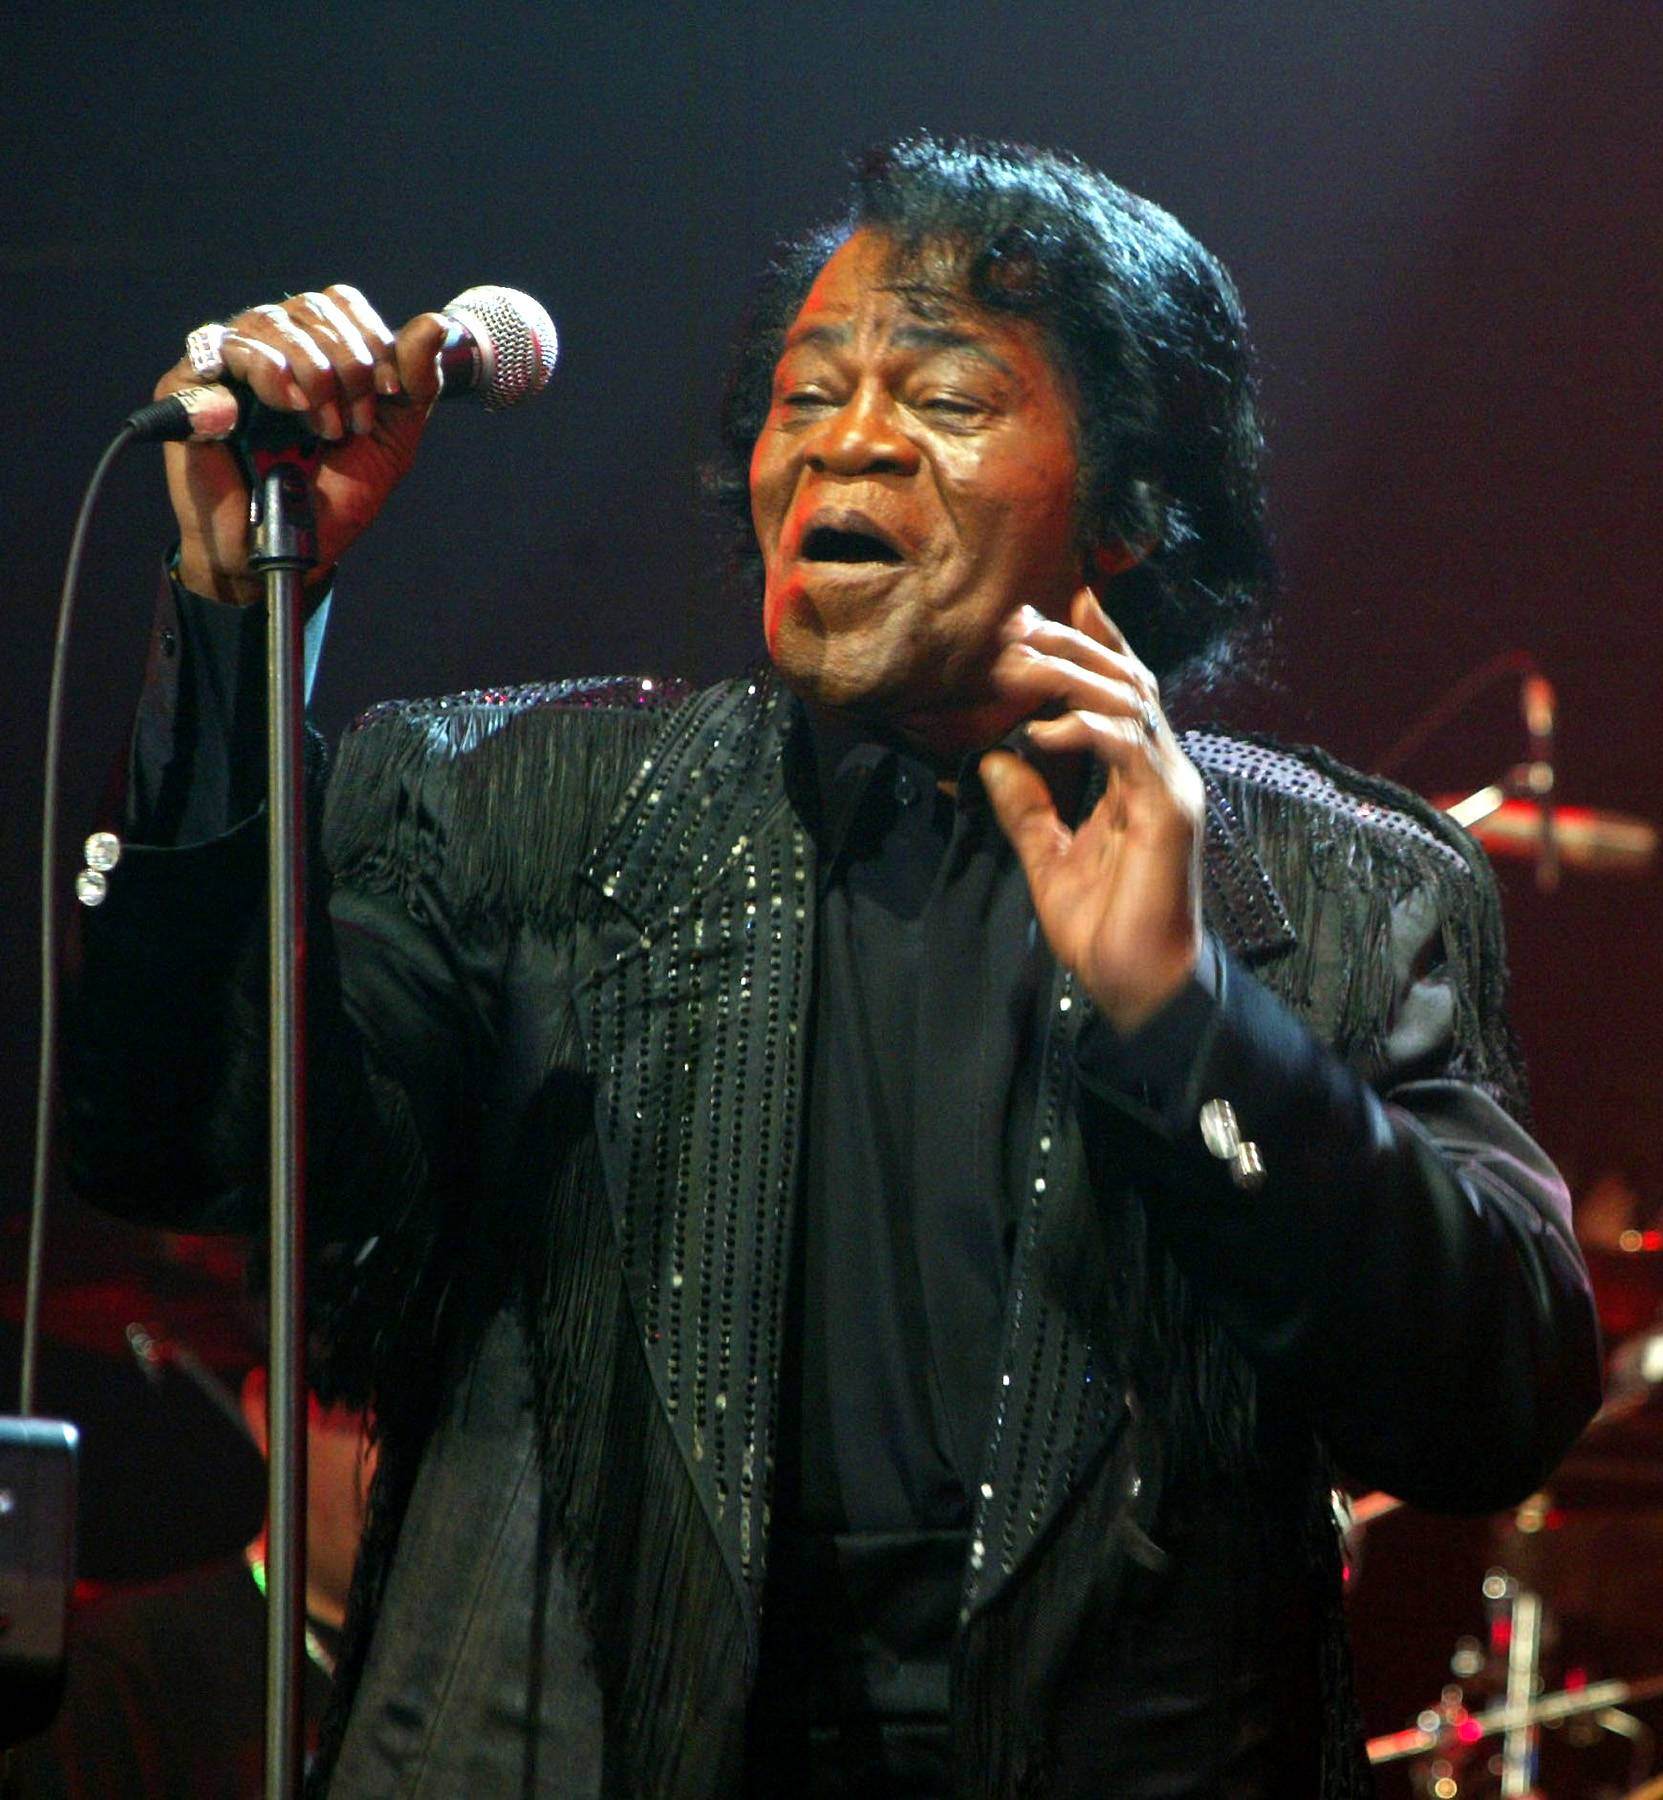 """James Brown, 'Funky Drummer' - One of the most sampled breaks of all time, it's hard for any self-respecting hip hop head to hear the heavily compressed drums that flow throughout this James Brown signature without thinking of Public Enemy (""""Bring the Noise,"""" """"Rebel Without a Pause""""), Boogie Down Productions (""""South Bronx""""), LL Cool J (""""Mama Said Knock You Out"""") and other unforgettable rap moments.  (Photo: Matthew Simmons/Getty Images)"""